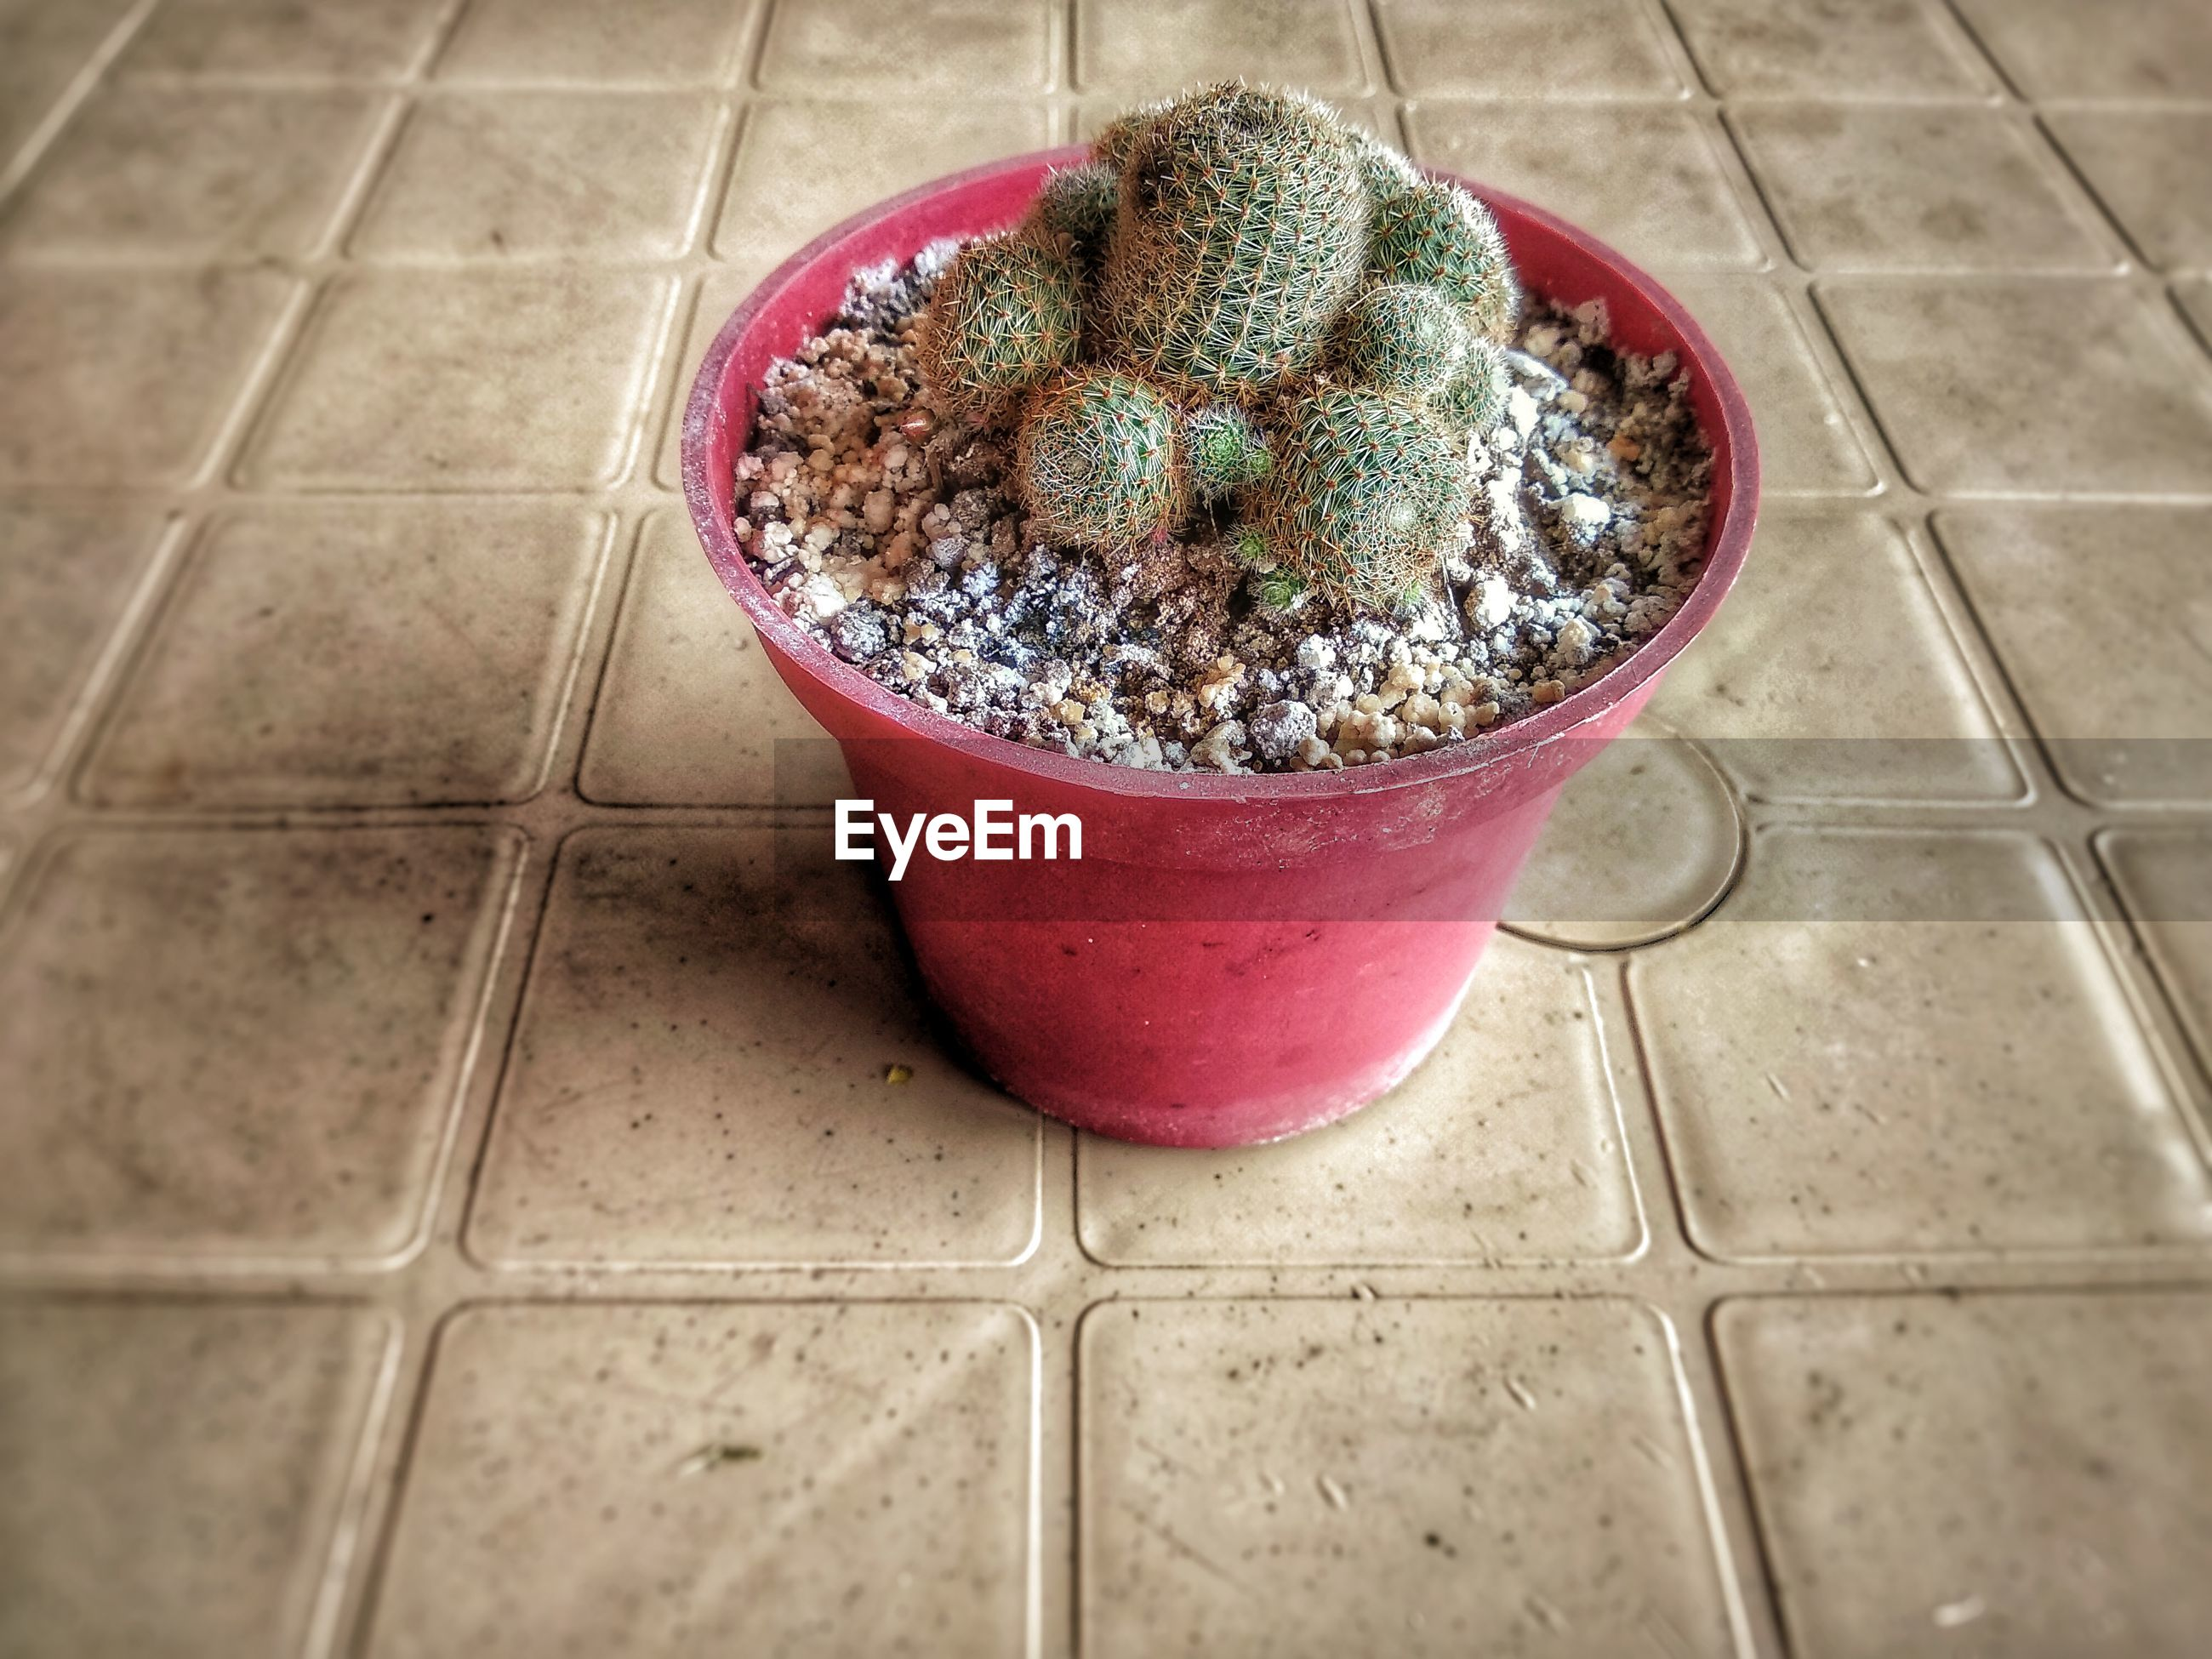 Close-up of potted plant on floor